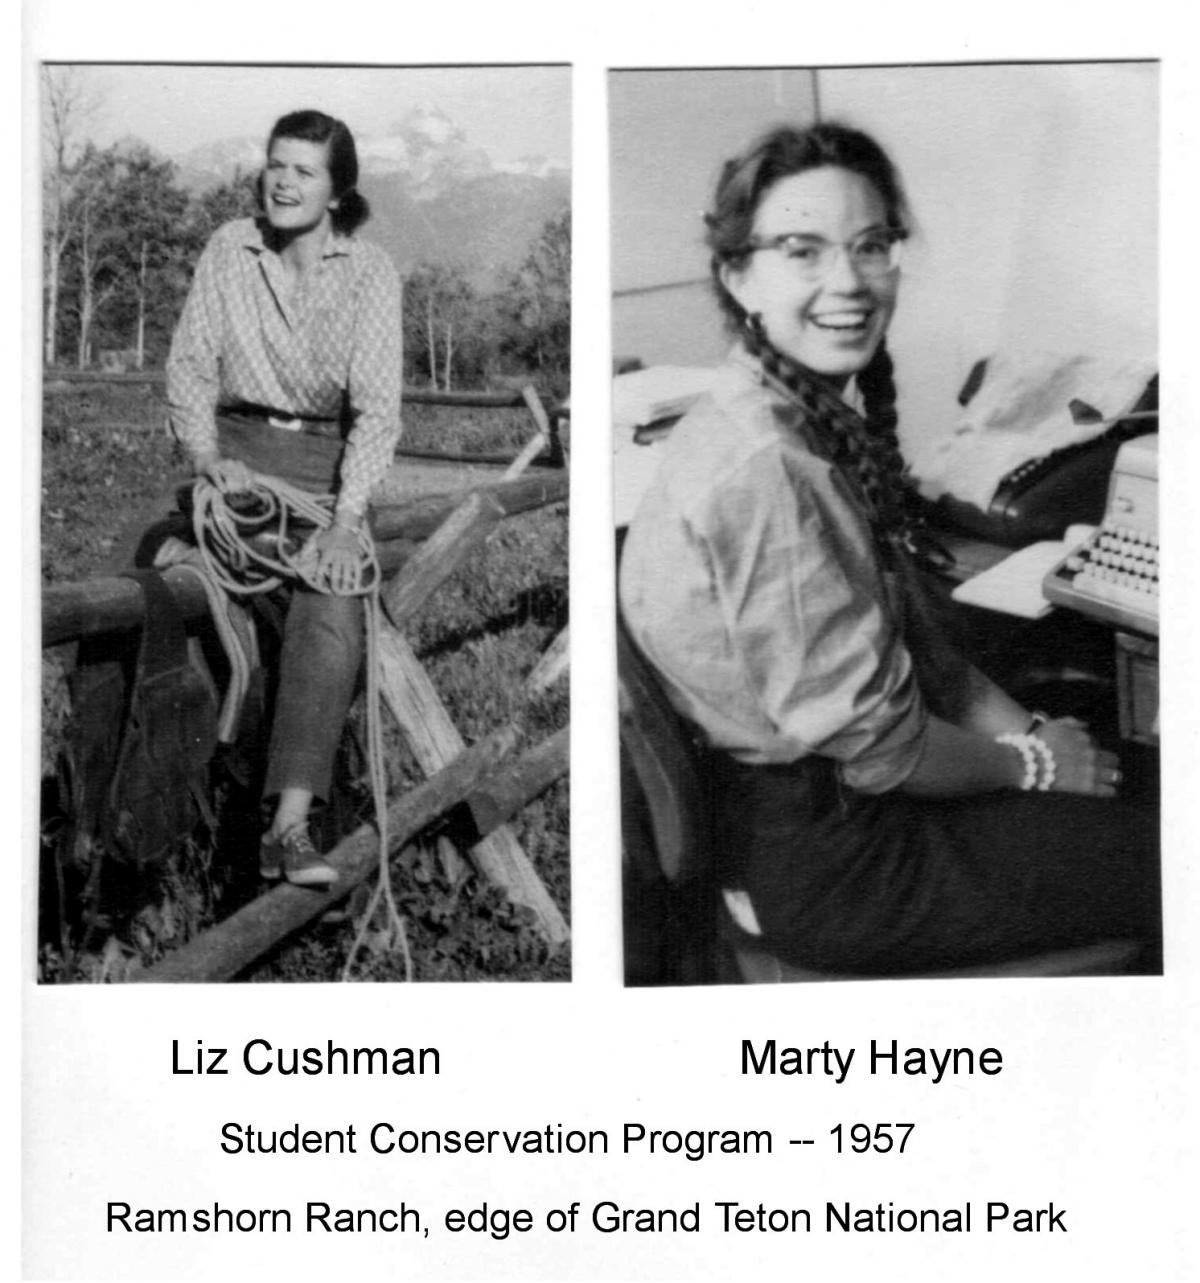 Liz Cushman and Marty Hayne Student Conservation Program, 1957